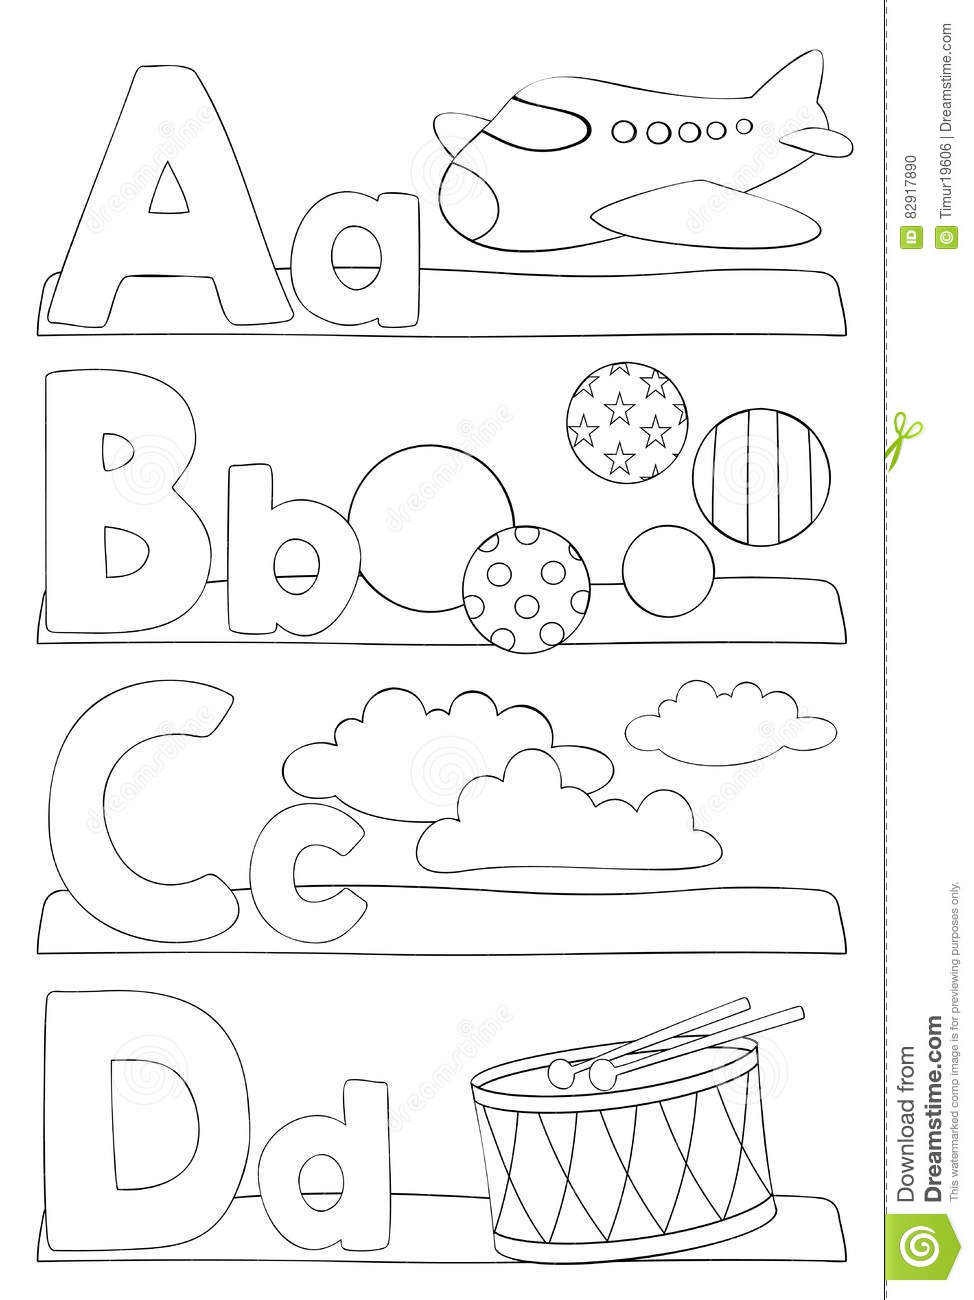 a b c coloring pages abc blocks coloring pages at getcoloringscom free c a pages coloring b